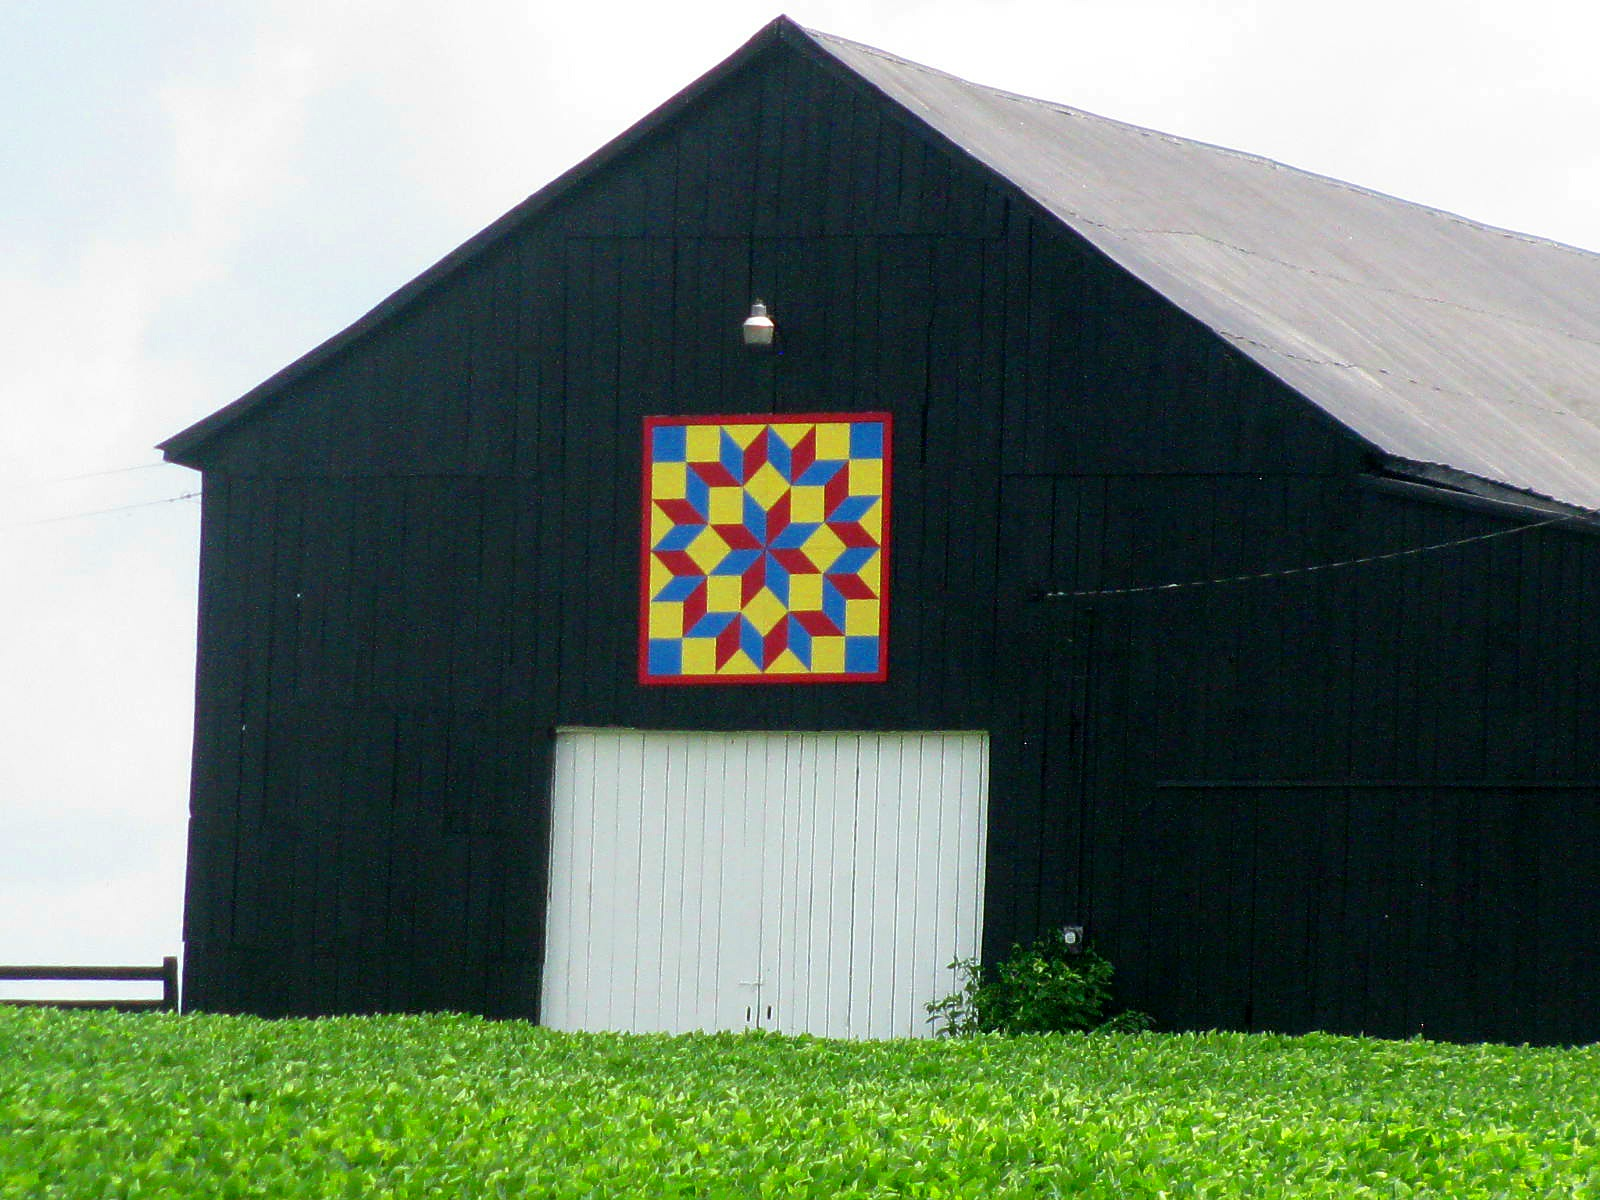 Quilt Patterns On Barns In Ky : Shedfor: Barn quilt patterns kentucky